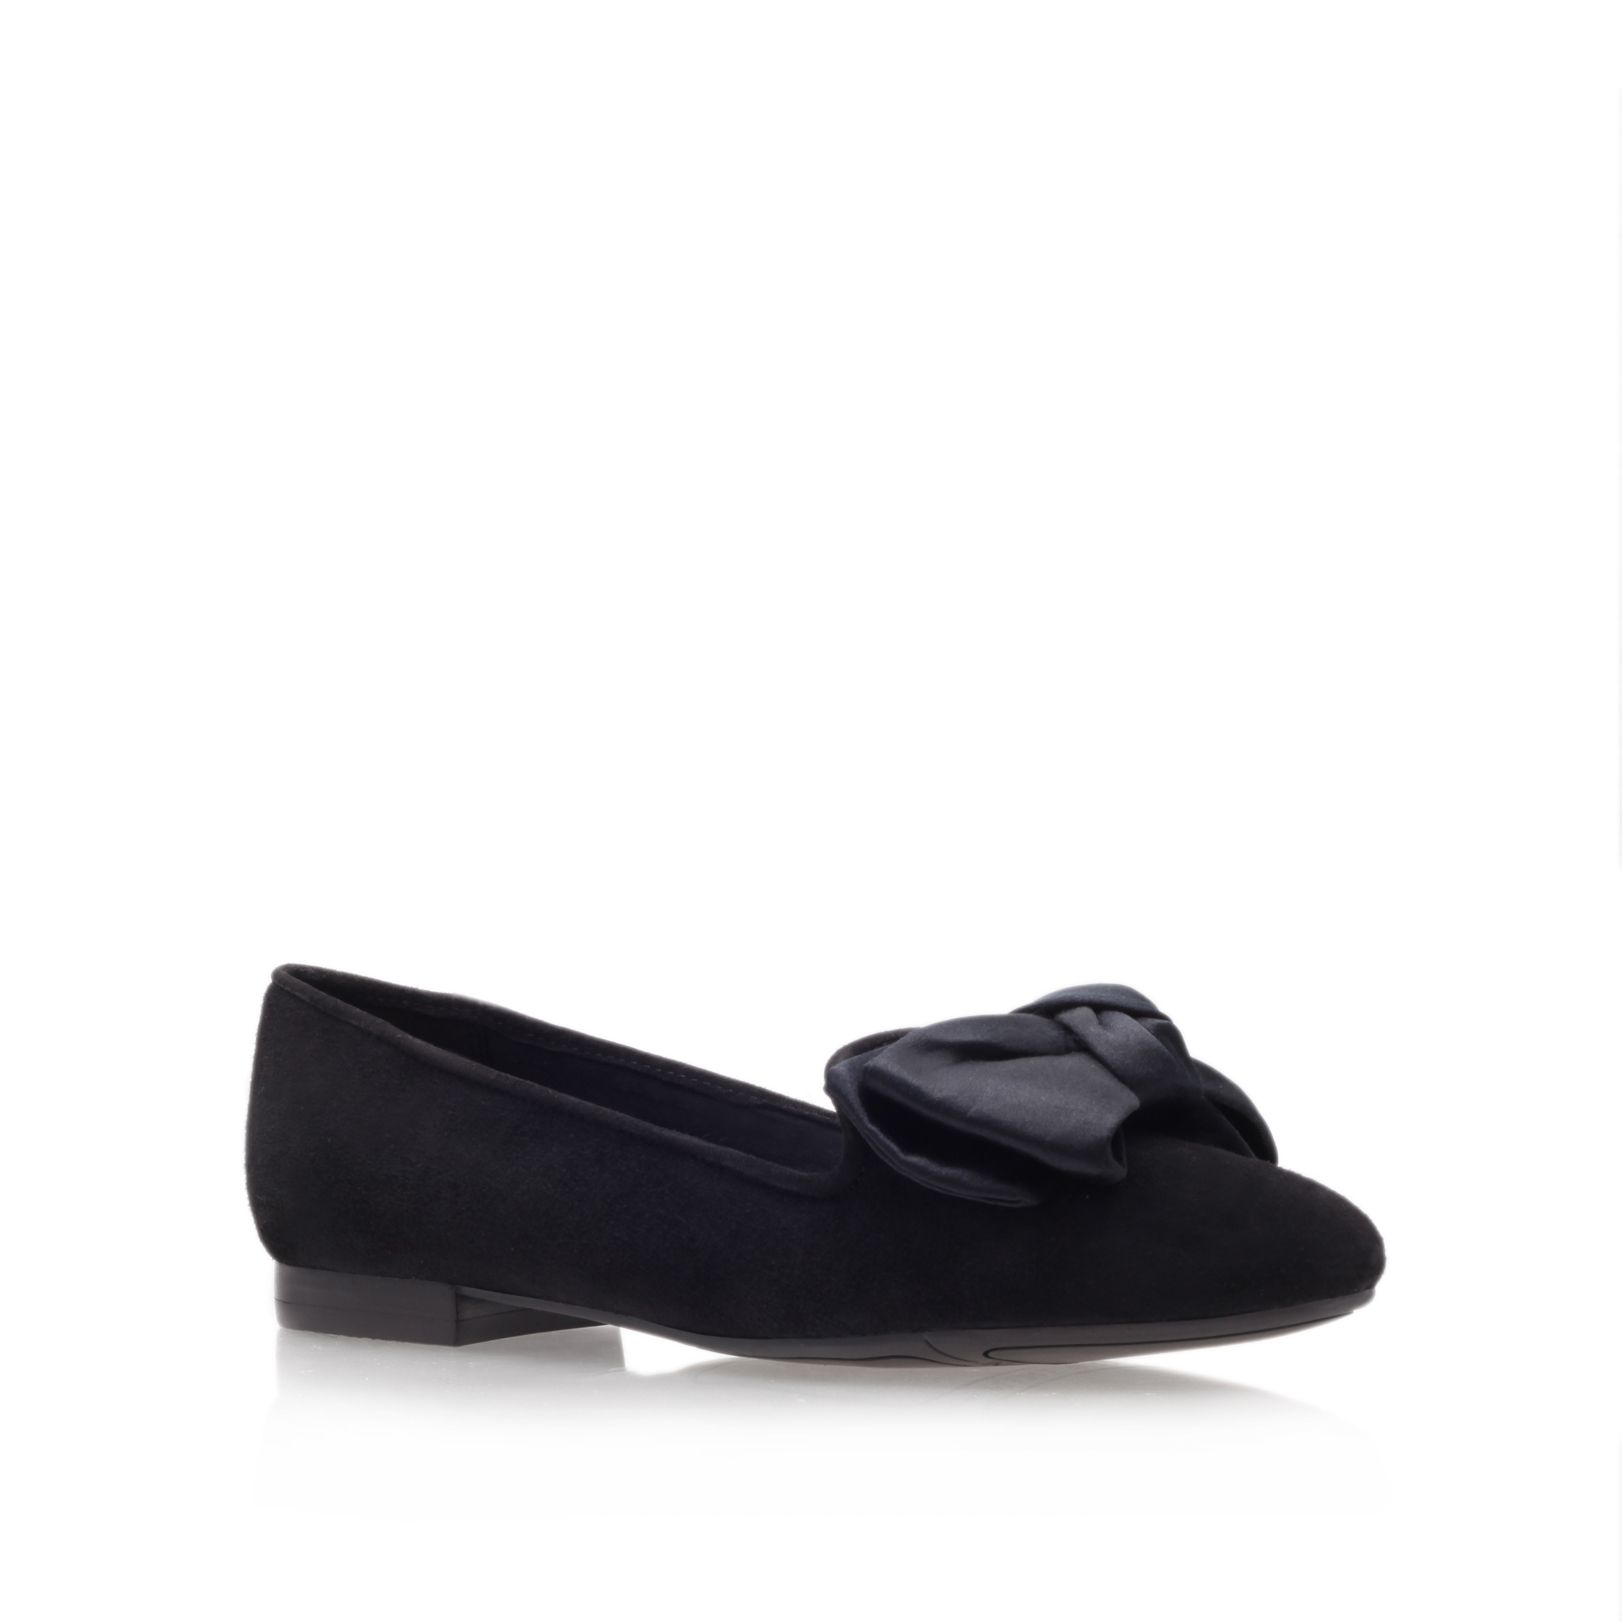 Luxah flat slipper shoes